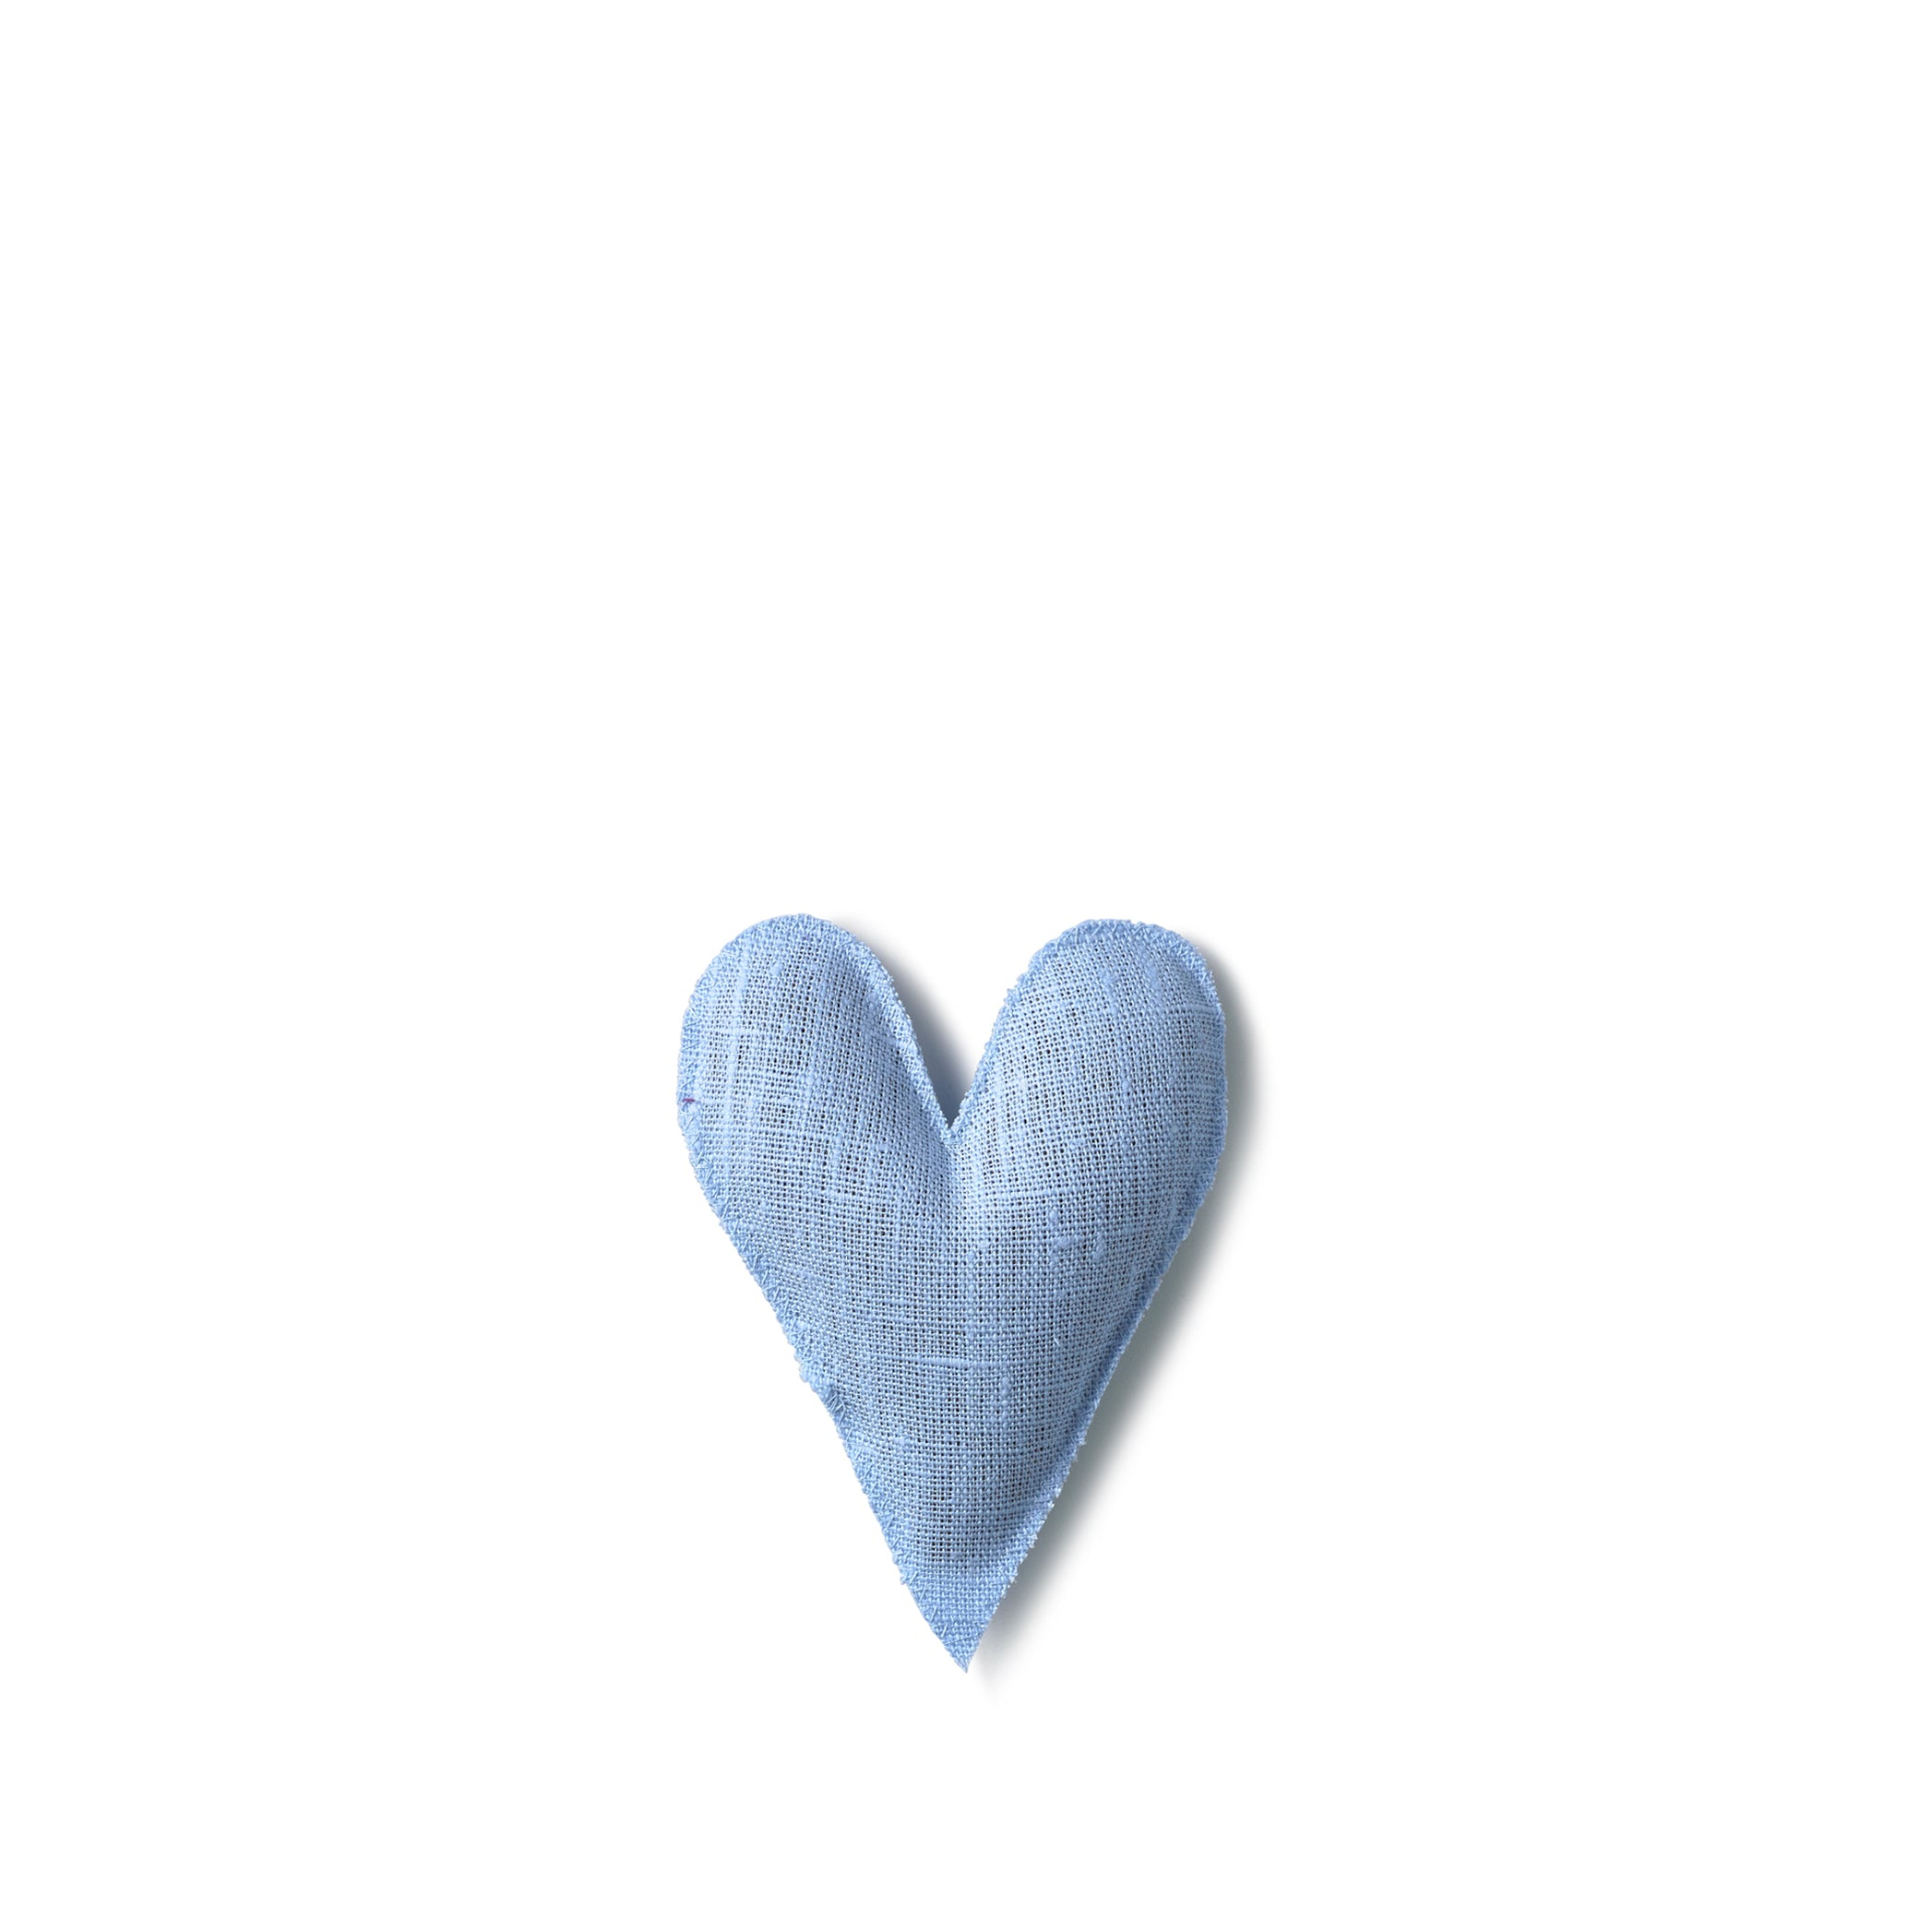 Lavender Heart in Light Blue